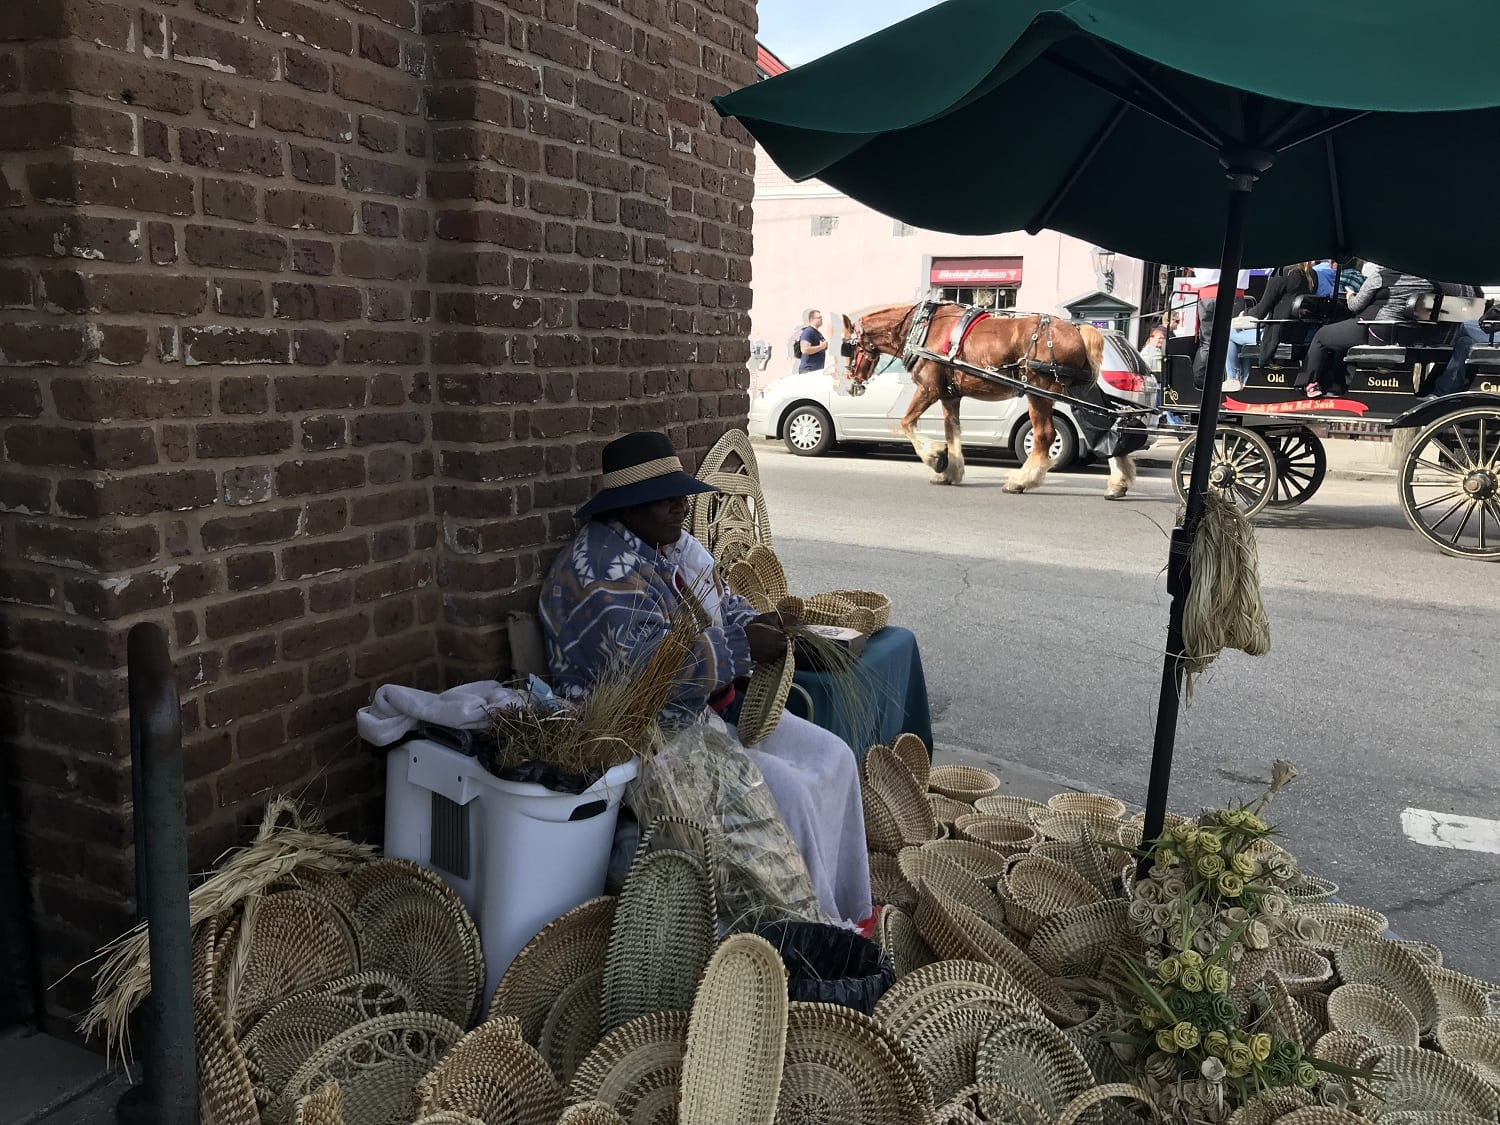 Sweetgrass baskets on sale at the Charleseton City Market